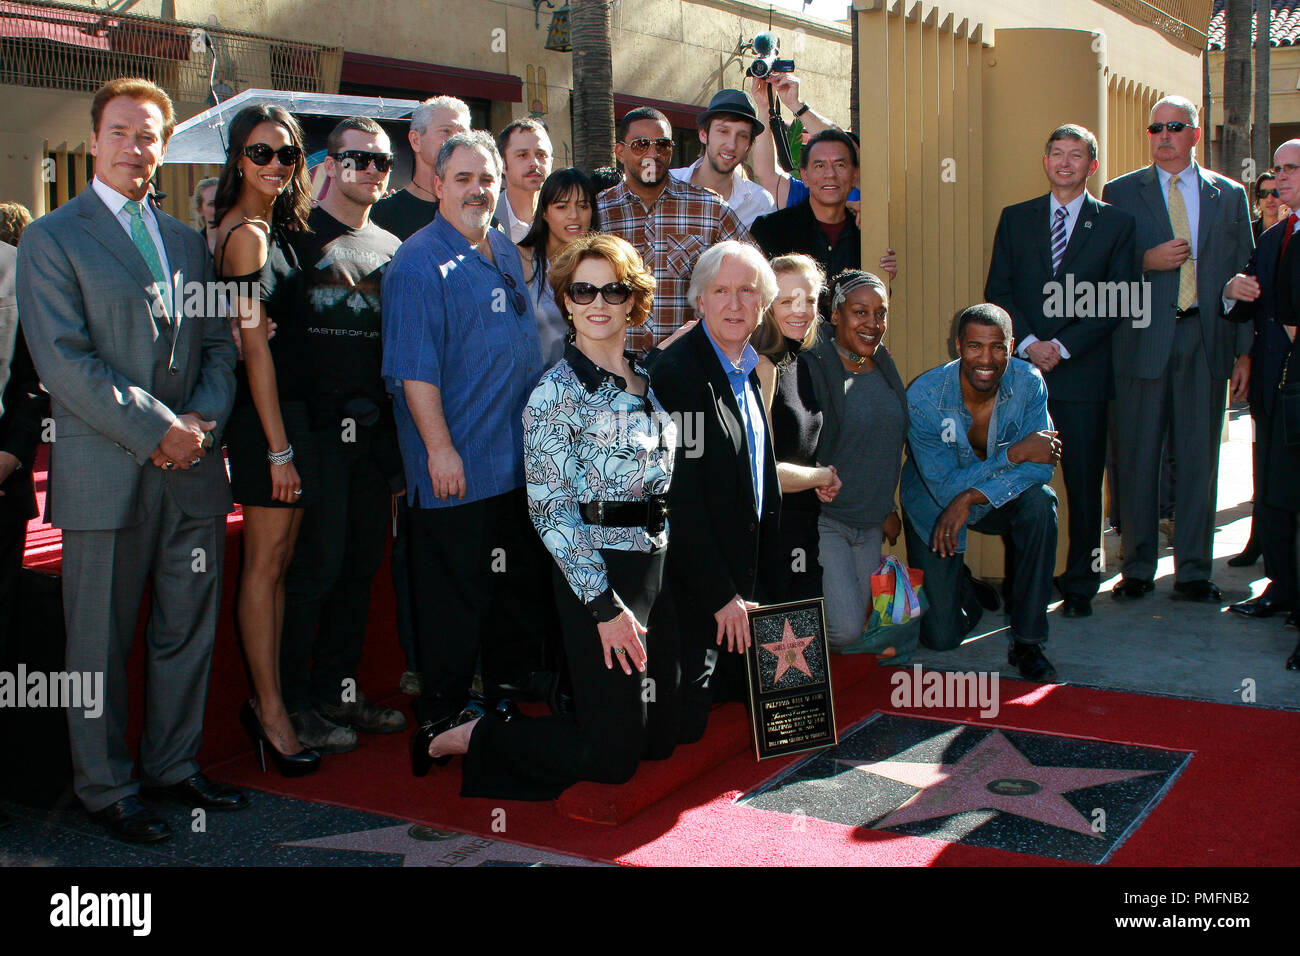 James Cameron And Avatar Cast At The Hollywood Chamber Of Commerce Ceremony To Honor Him With